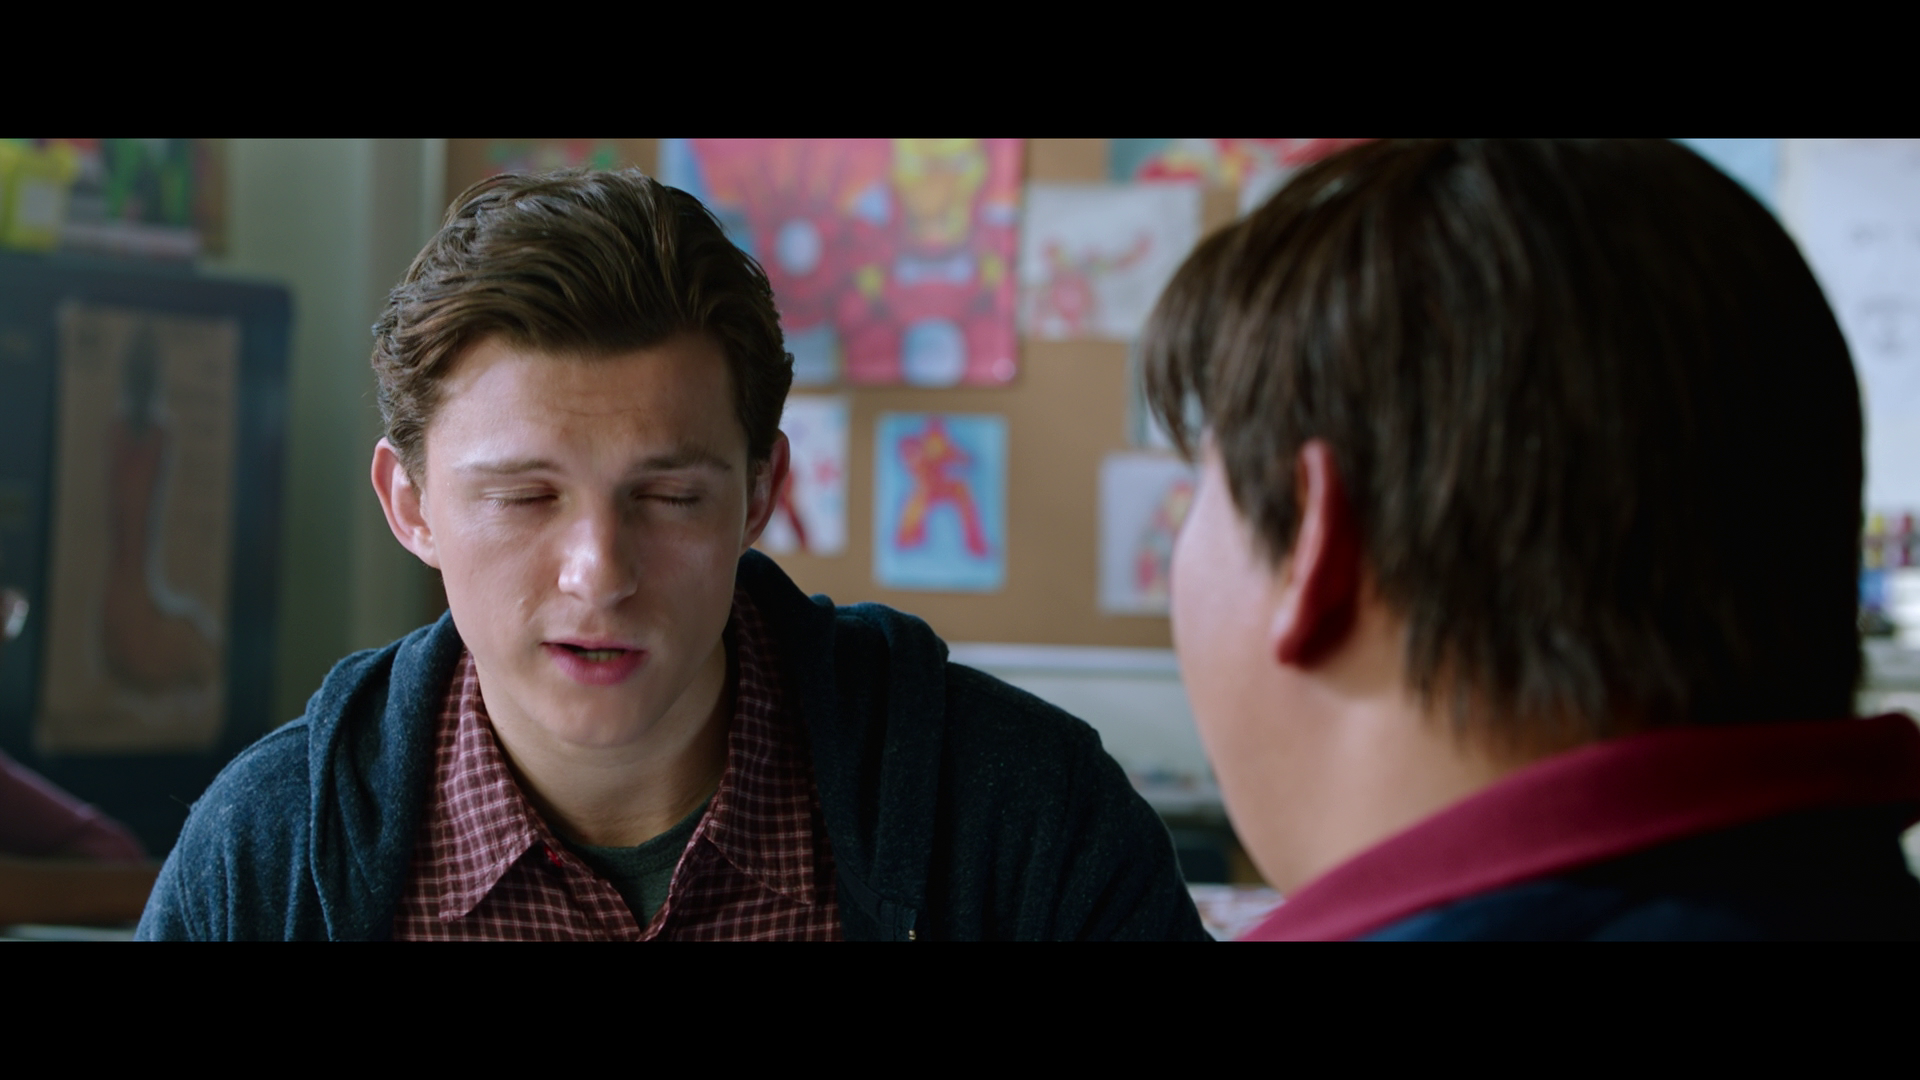 Spider-Man Far From Home (2019) 1080p BluRay AVC DTS-HD MA7.1-LatinoMegaHD